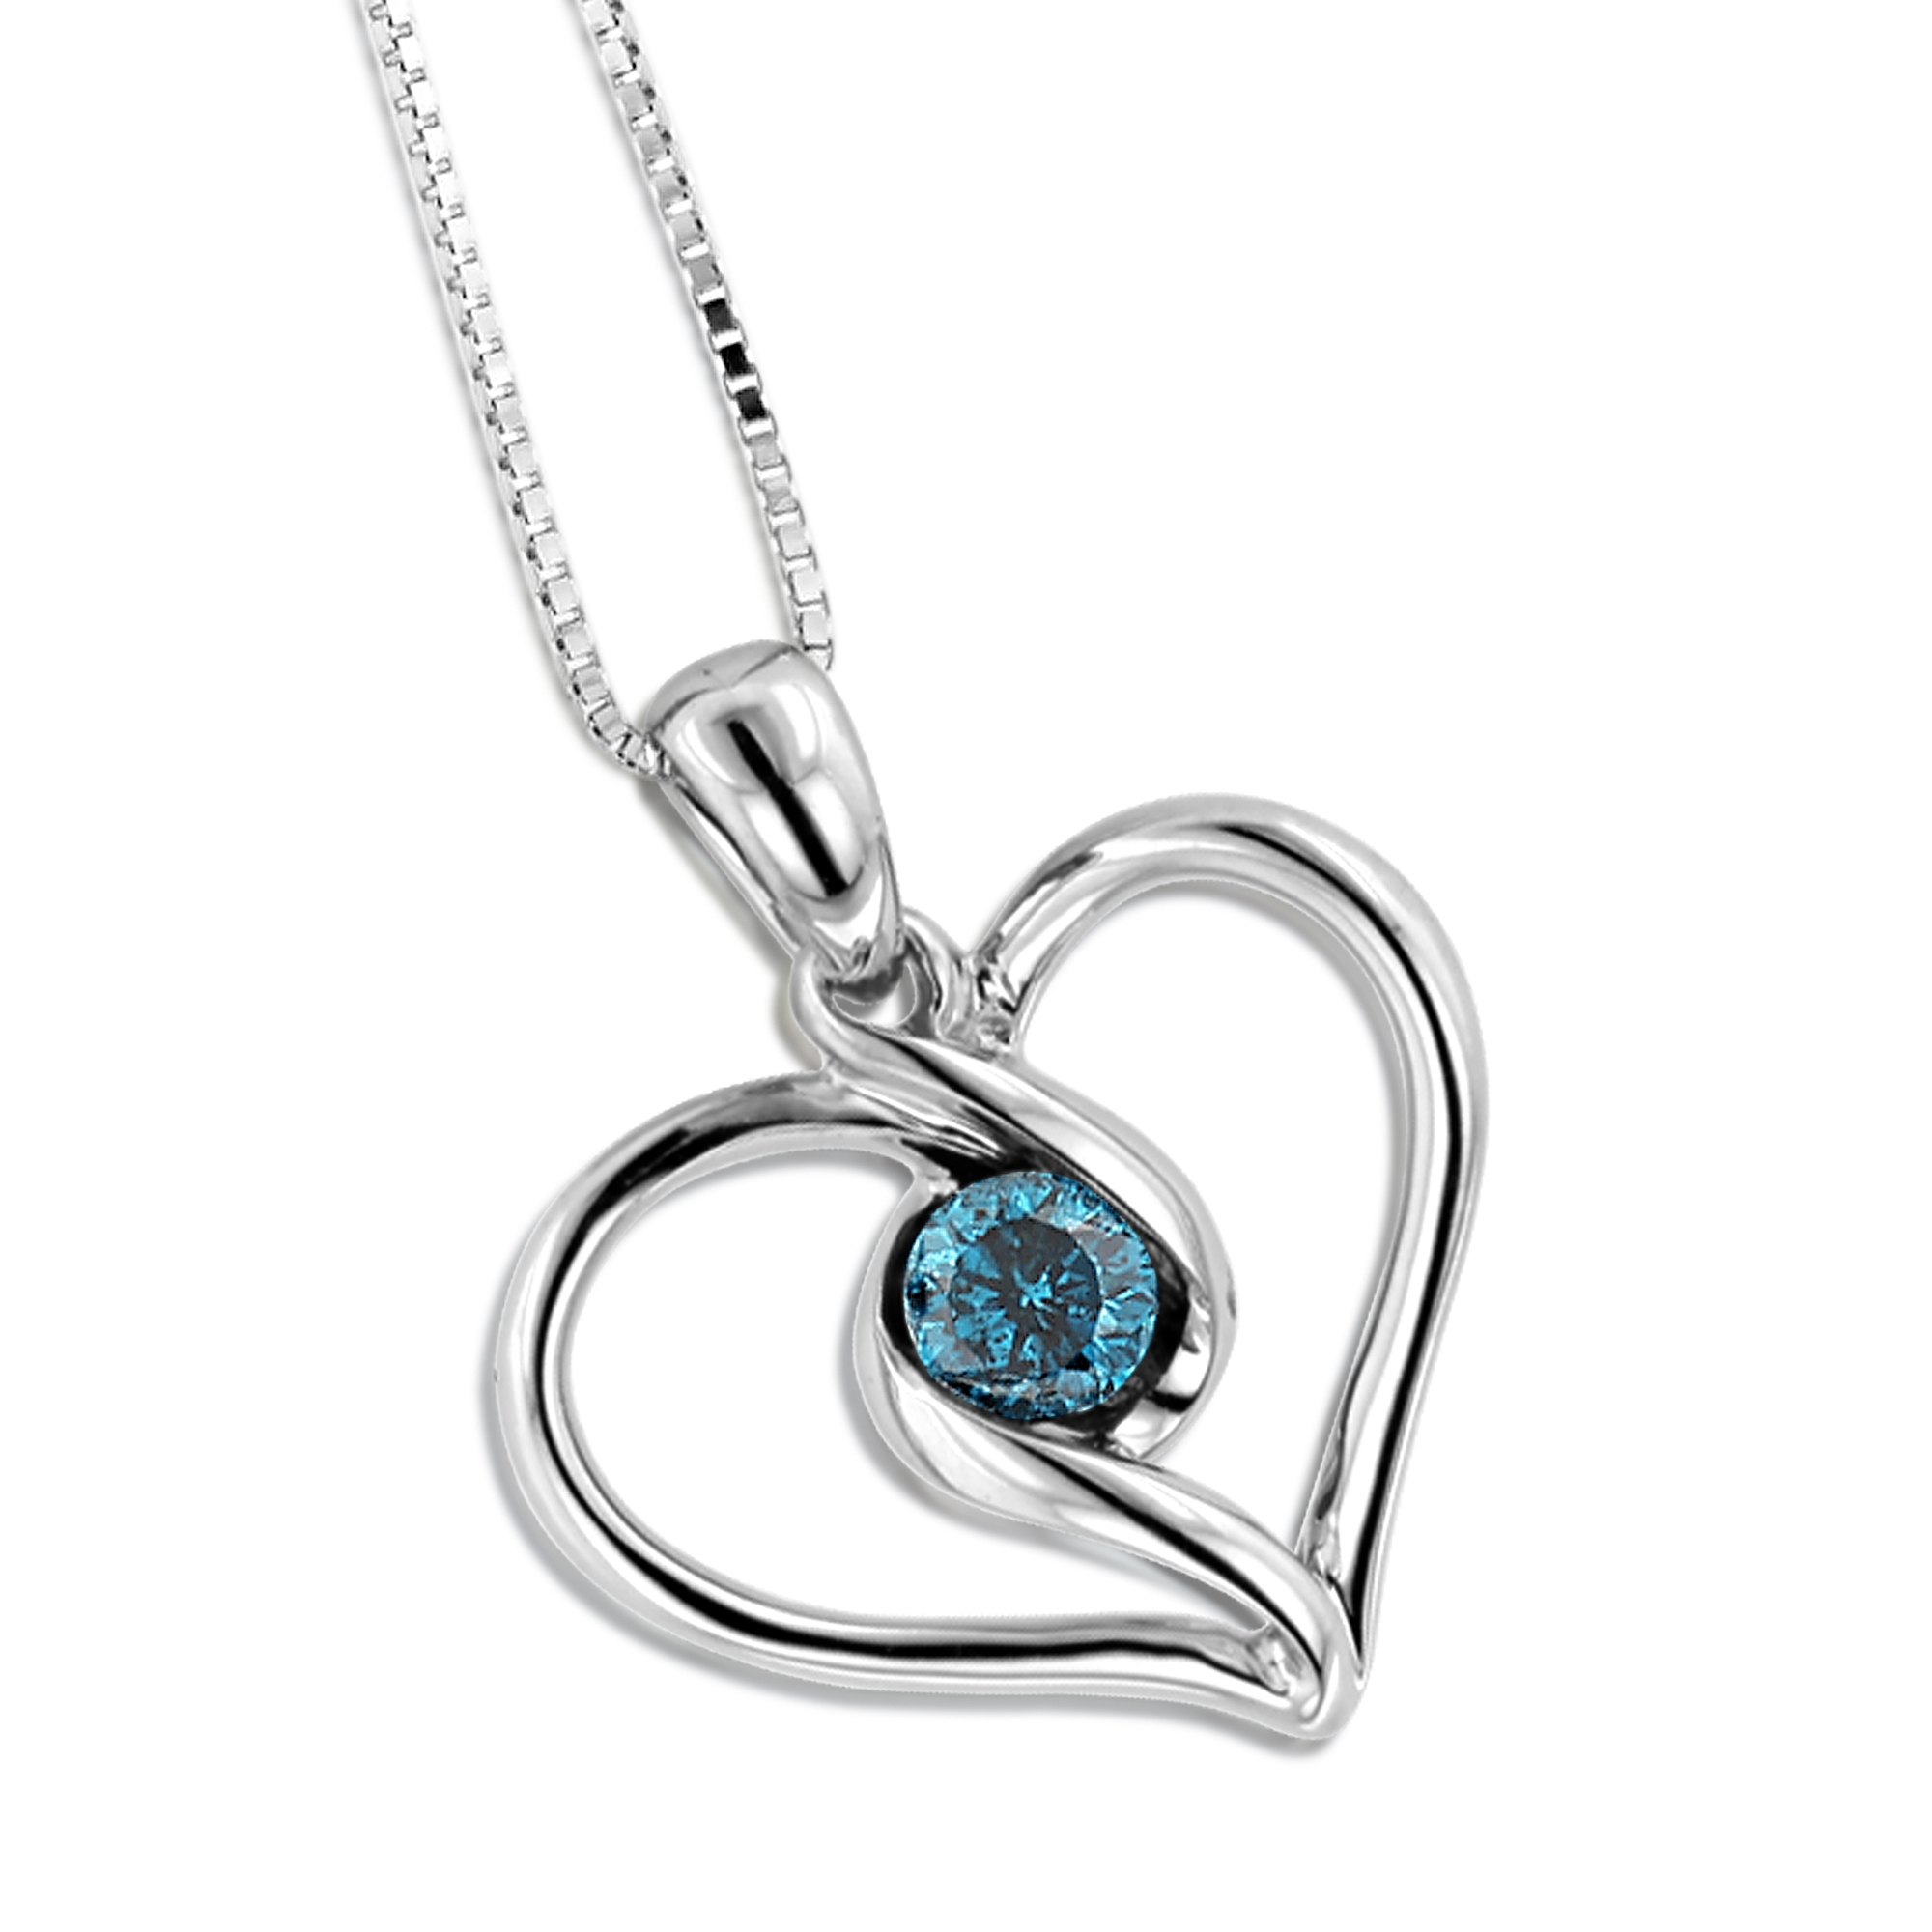 14K White Gold Single Blue Diamond Heart Necklace For Women Pendant Main Image